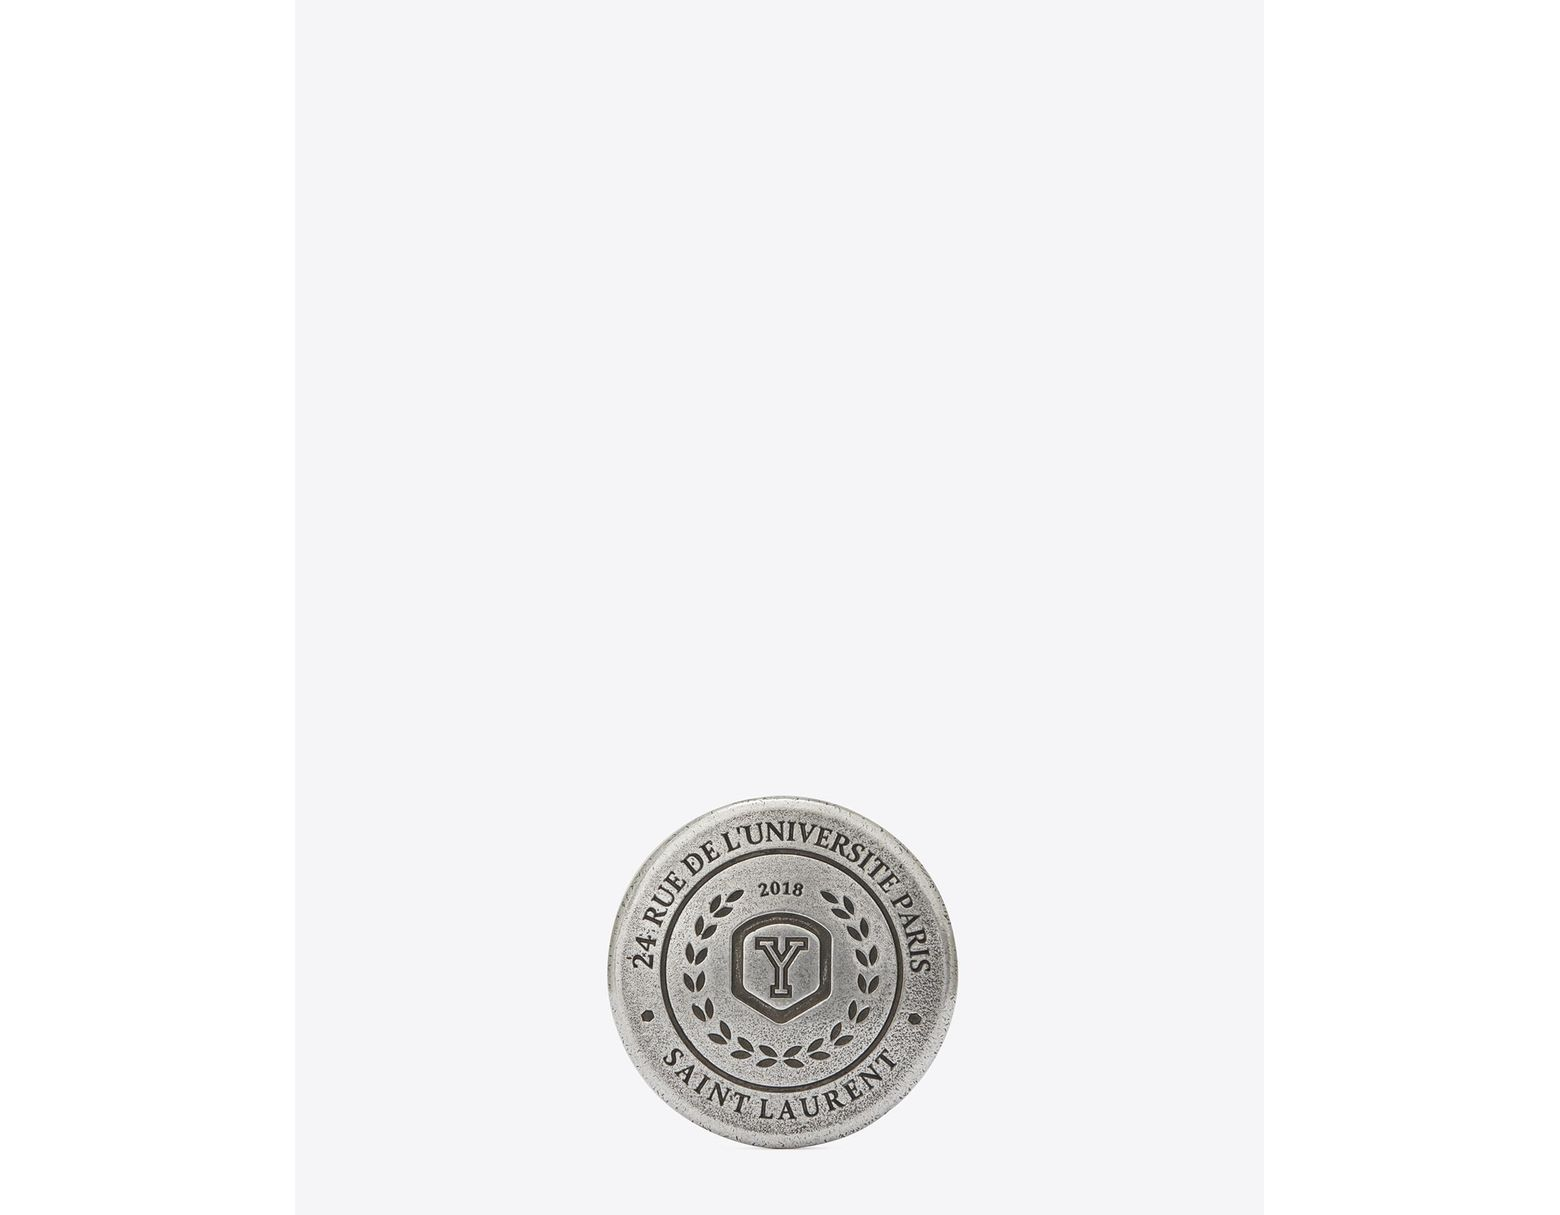 acfaf57b46a Saint Laurent Love Pins University Badge In Silver-toned Tin in Metallic -  Lyst